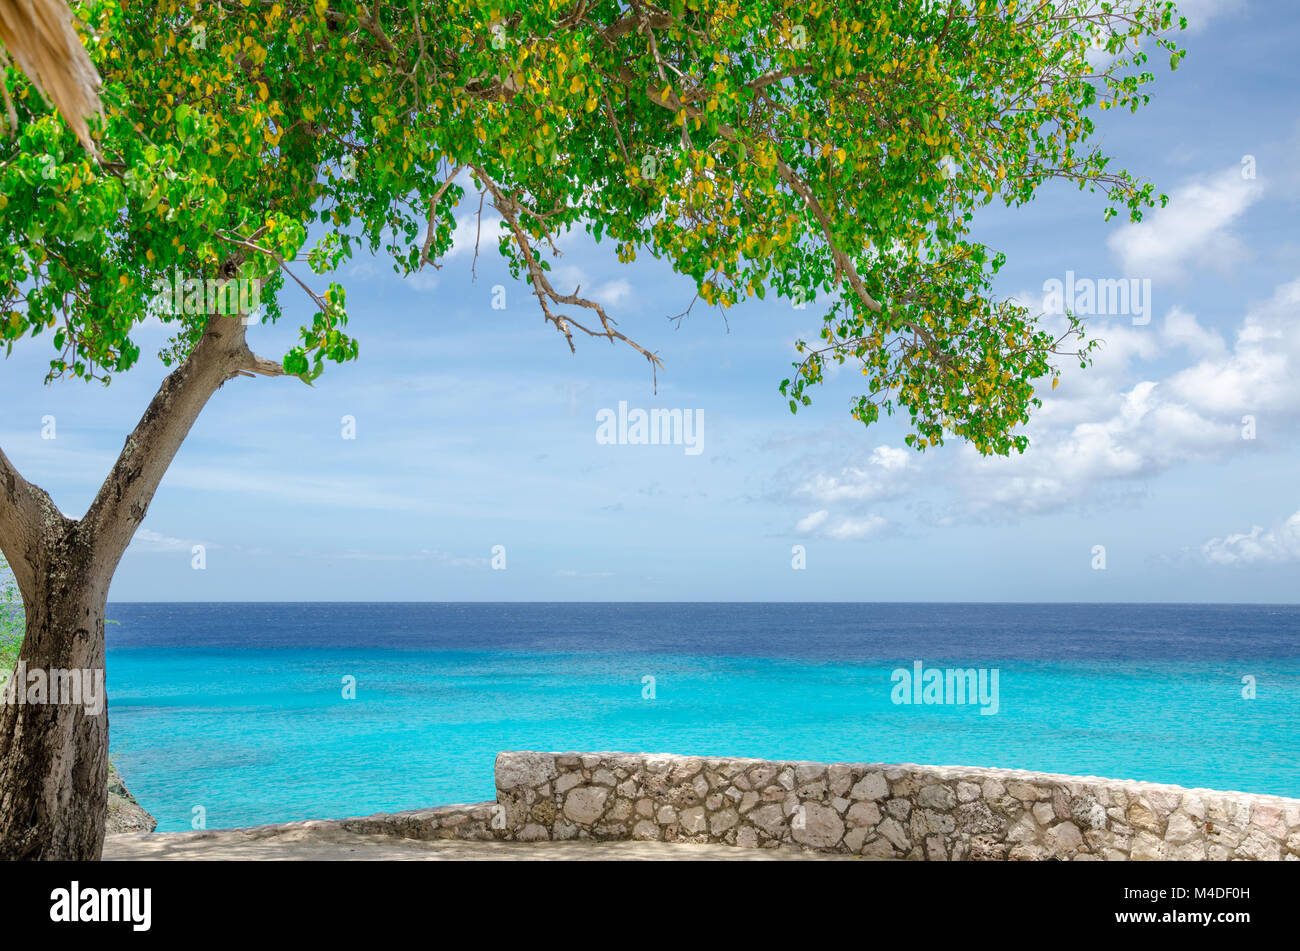 Grand Knip Beach in Curacao at the Dutch Antilles - Stock Image